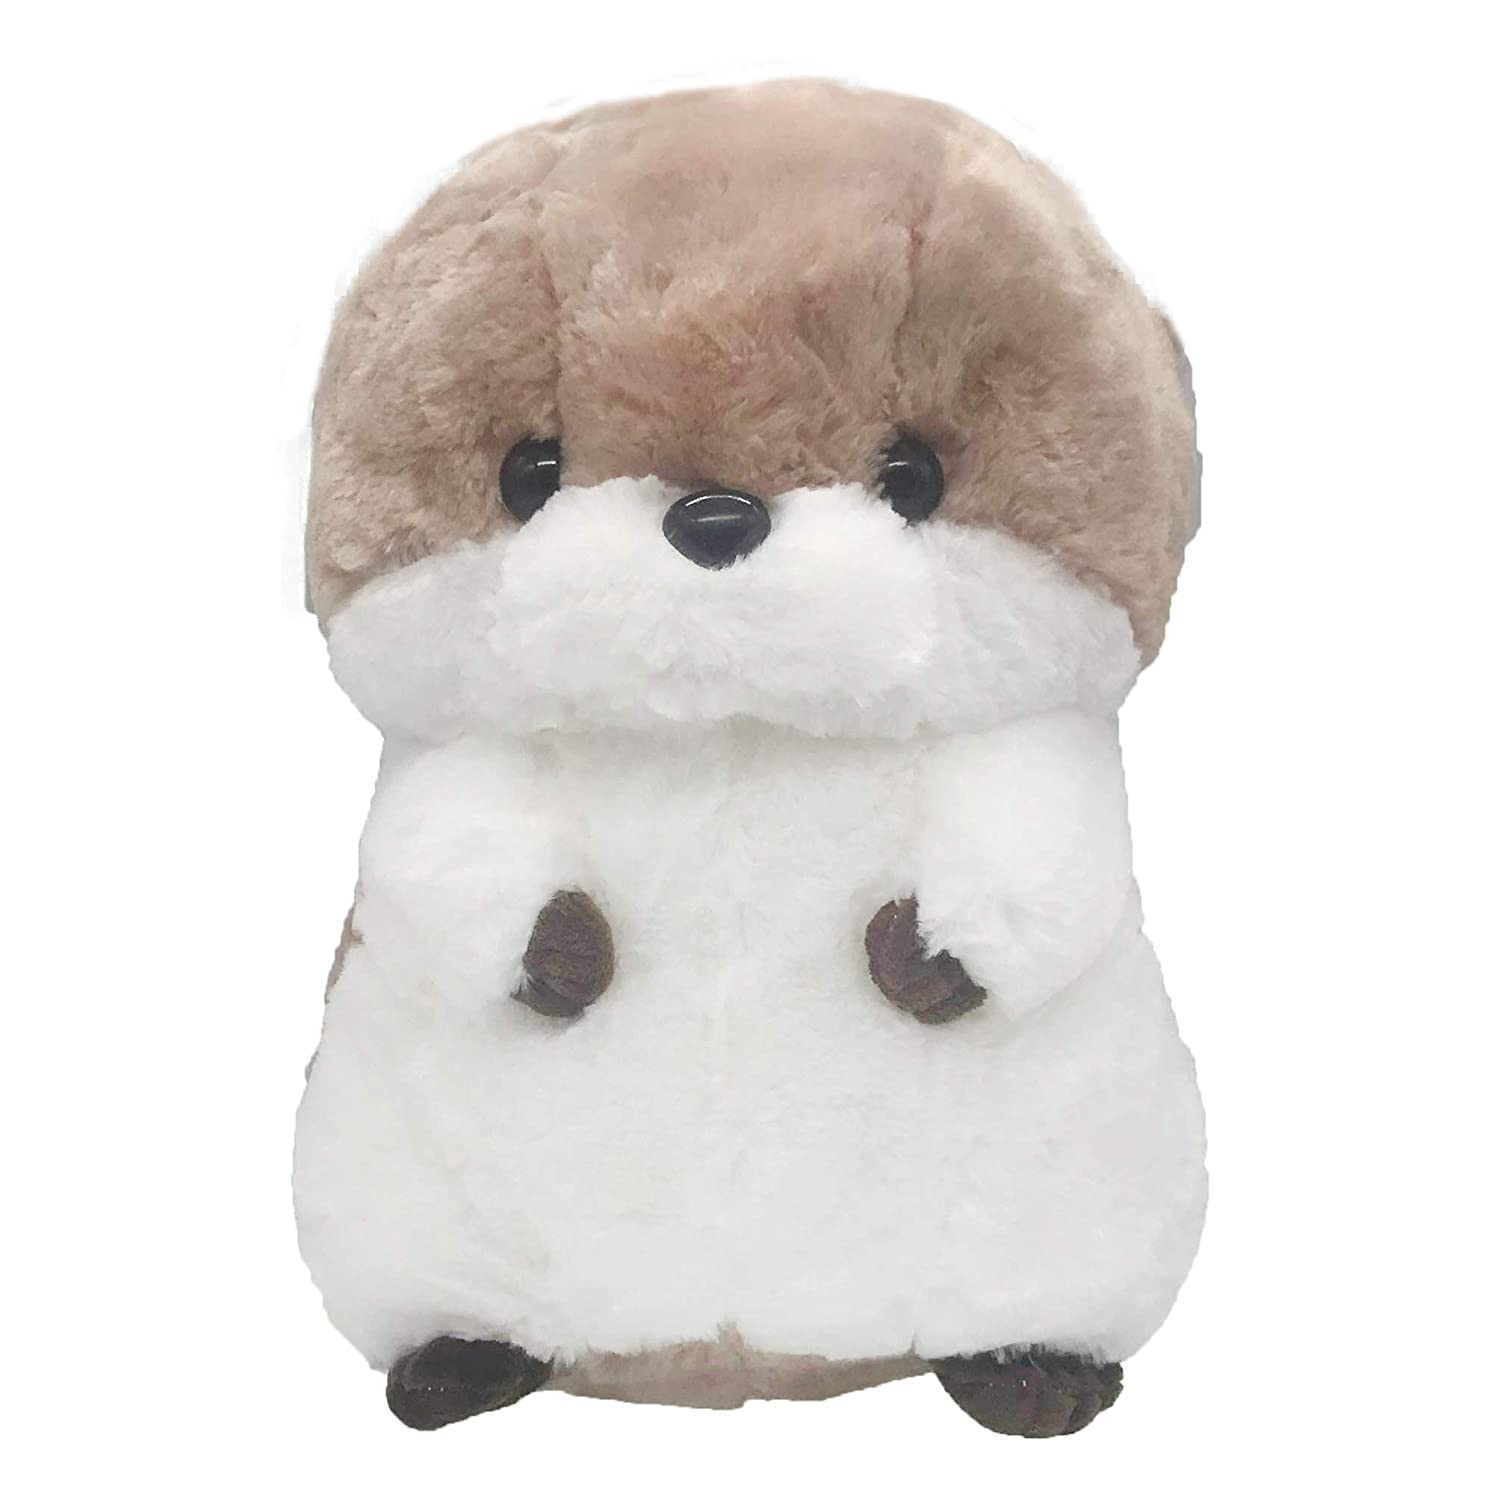 Otter Stuffed Animal Durable Fluffy Sea Otter Plush Cuddly Stuffed River Otter Soft Wildlife Animal Plush Adorable Otter Toy Creative Gifts Collection for Children Baby Kids Toddler Girls 12 Coffee